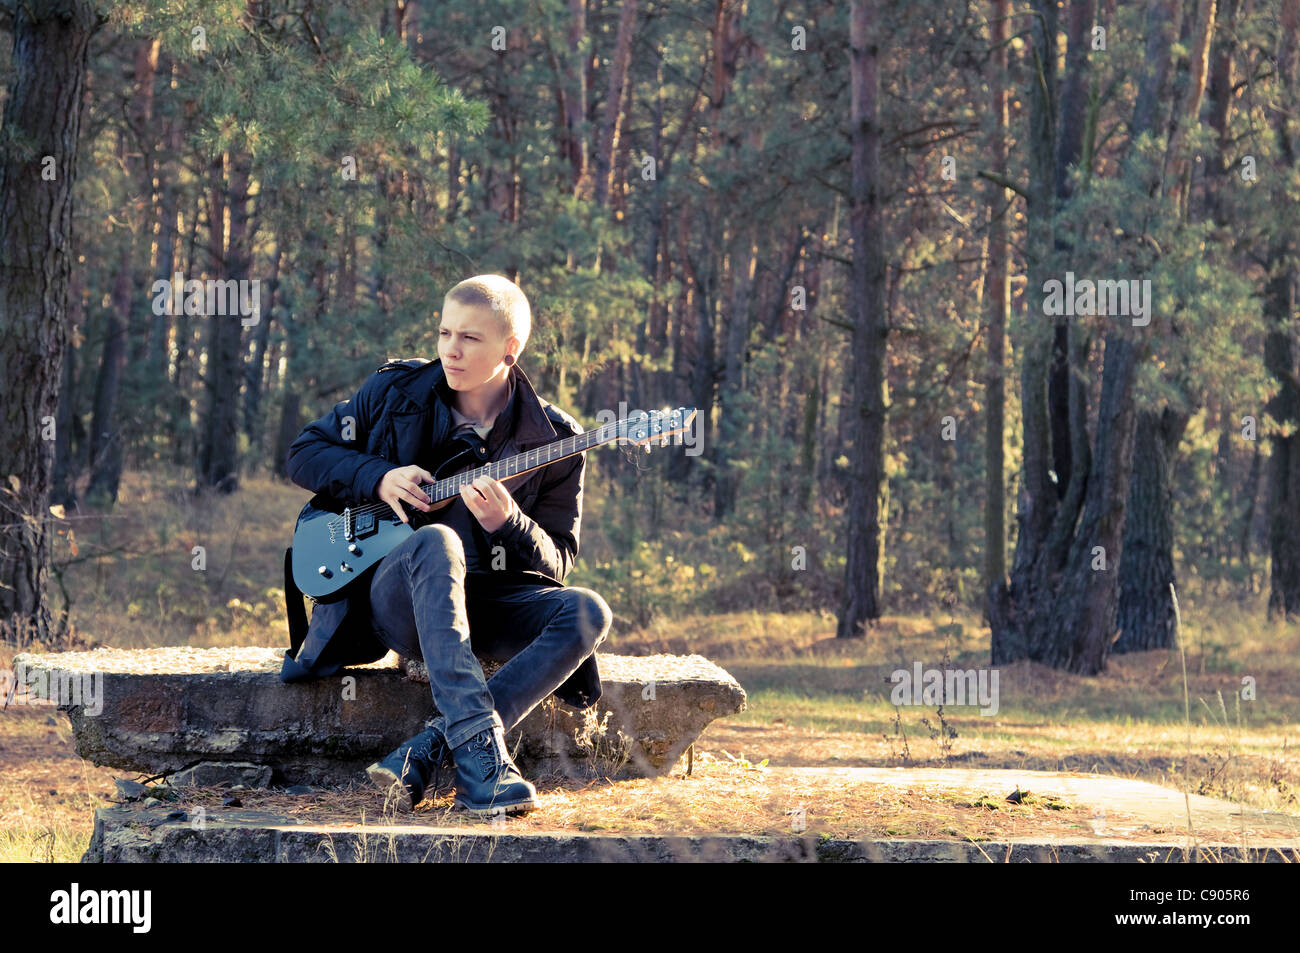 teen musician plays the guitar in the autumn forest - Stock Image